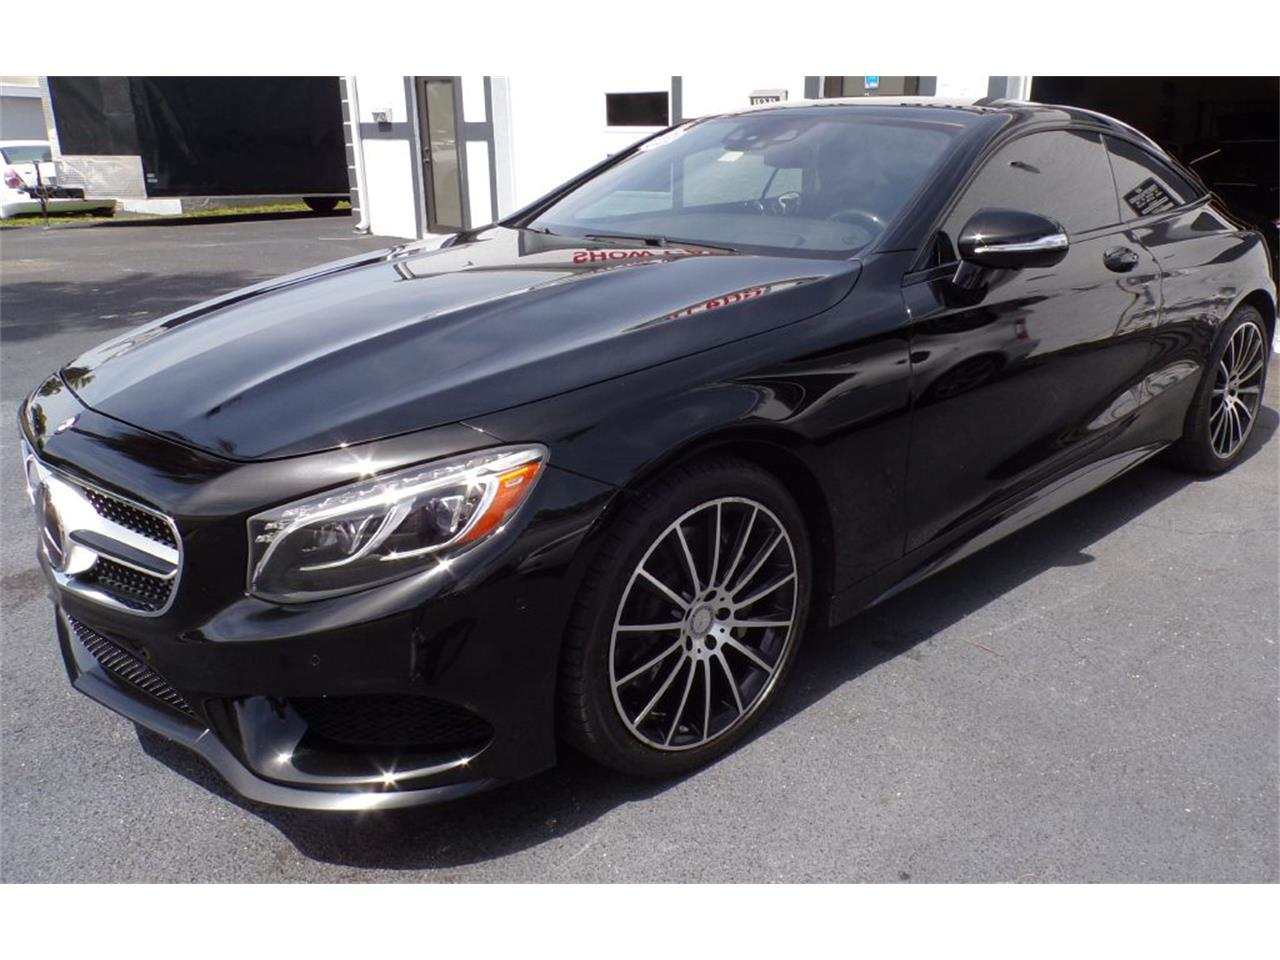 for sale 2016 mercedes-benz s-class in boca raton, florida cars - boca raton, fl at geebo